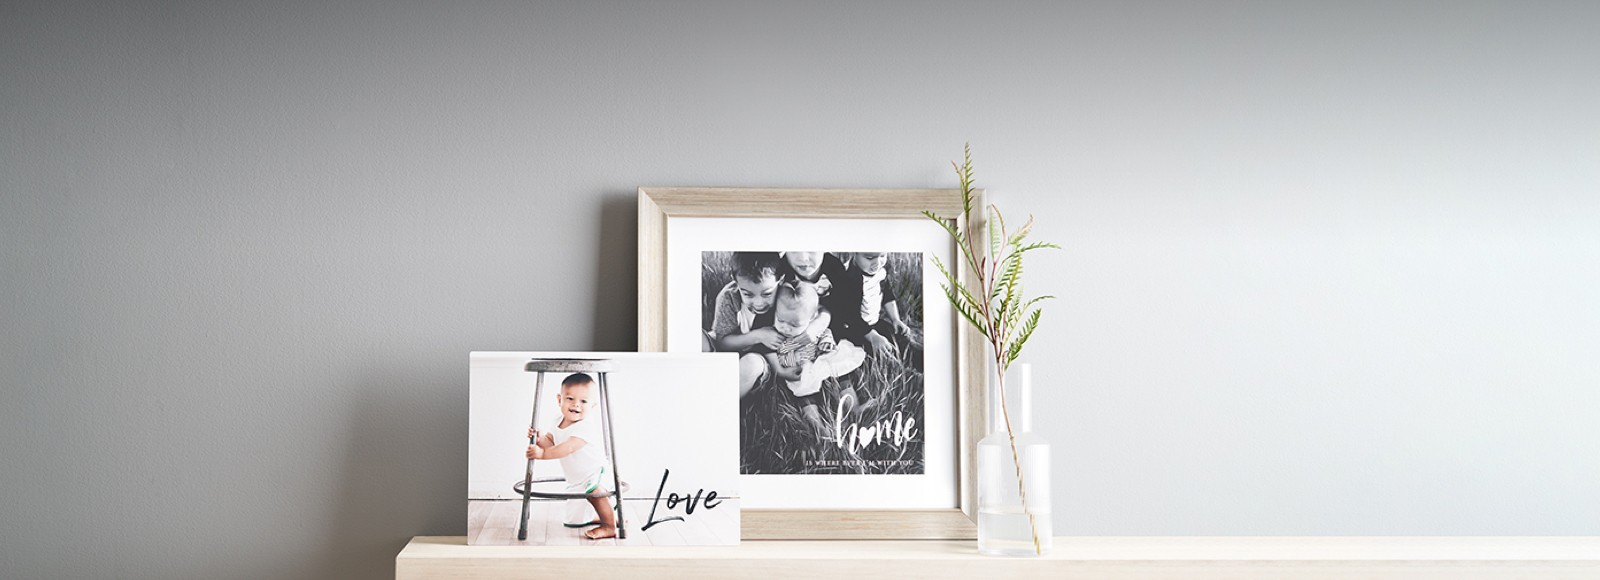 Custom My Design Assistant wall art | shutterfly